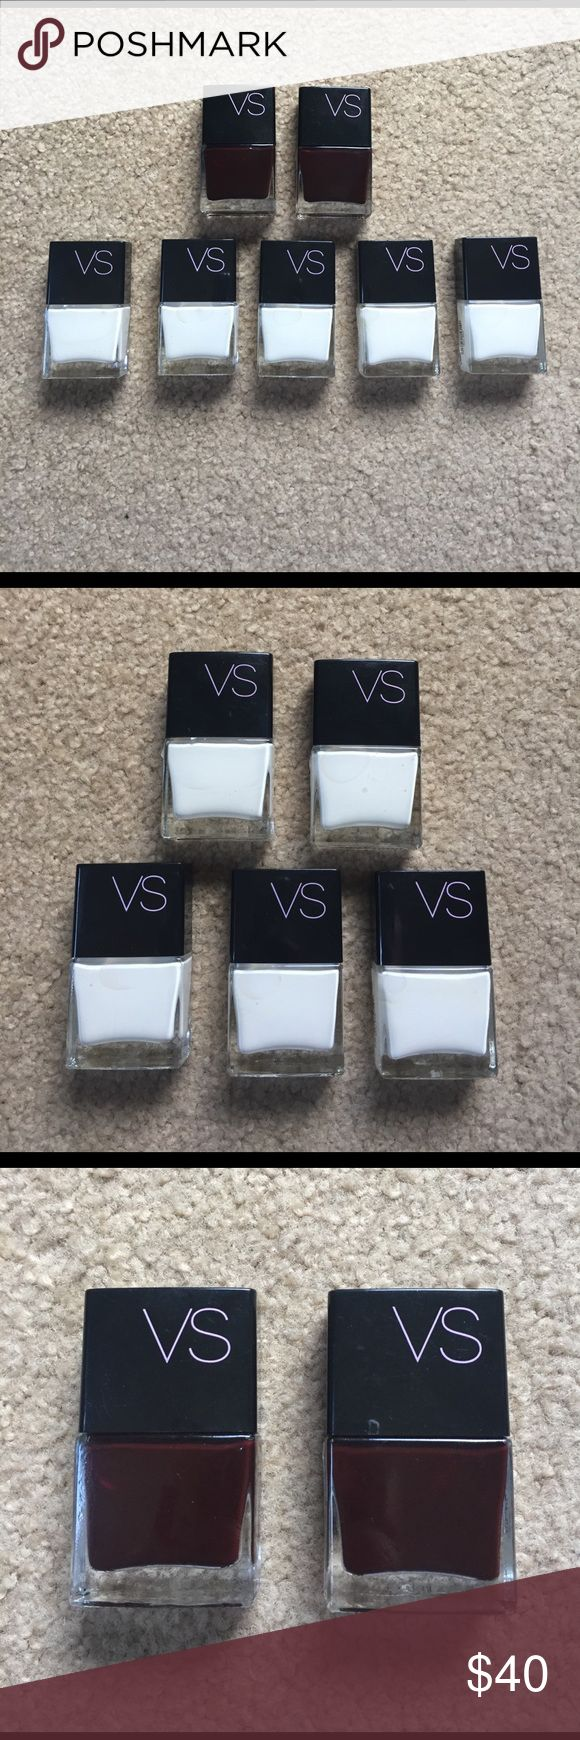 Victoria's Secret nail polish 8 VS nail polishes, 5 white and 3 burgundy, never used, 0.35 fl oz each *MOVING I have to get rid of all of this stuff. Feel free to submit offers and bundle for discounts!* Victoria's Secret Makeup